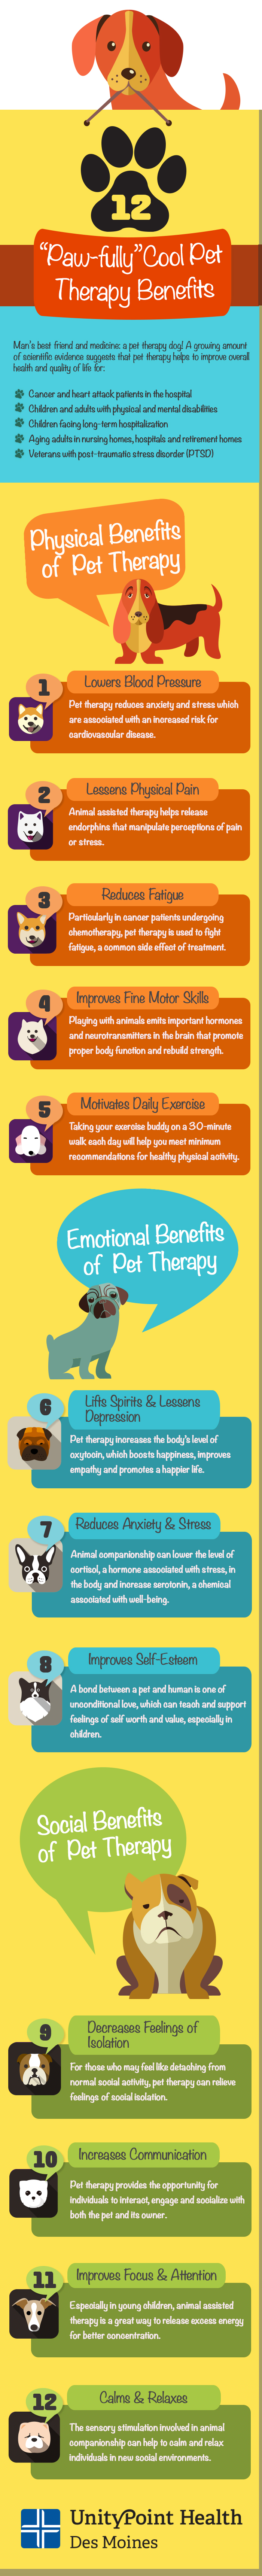 12-pet-therapy-benefits-infographic